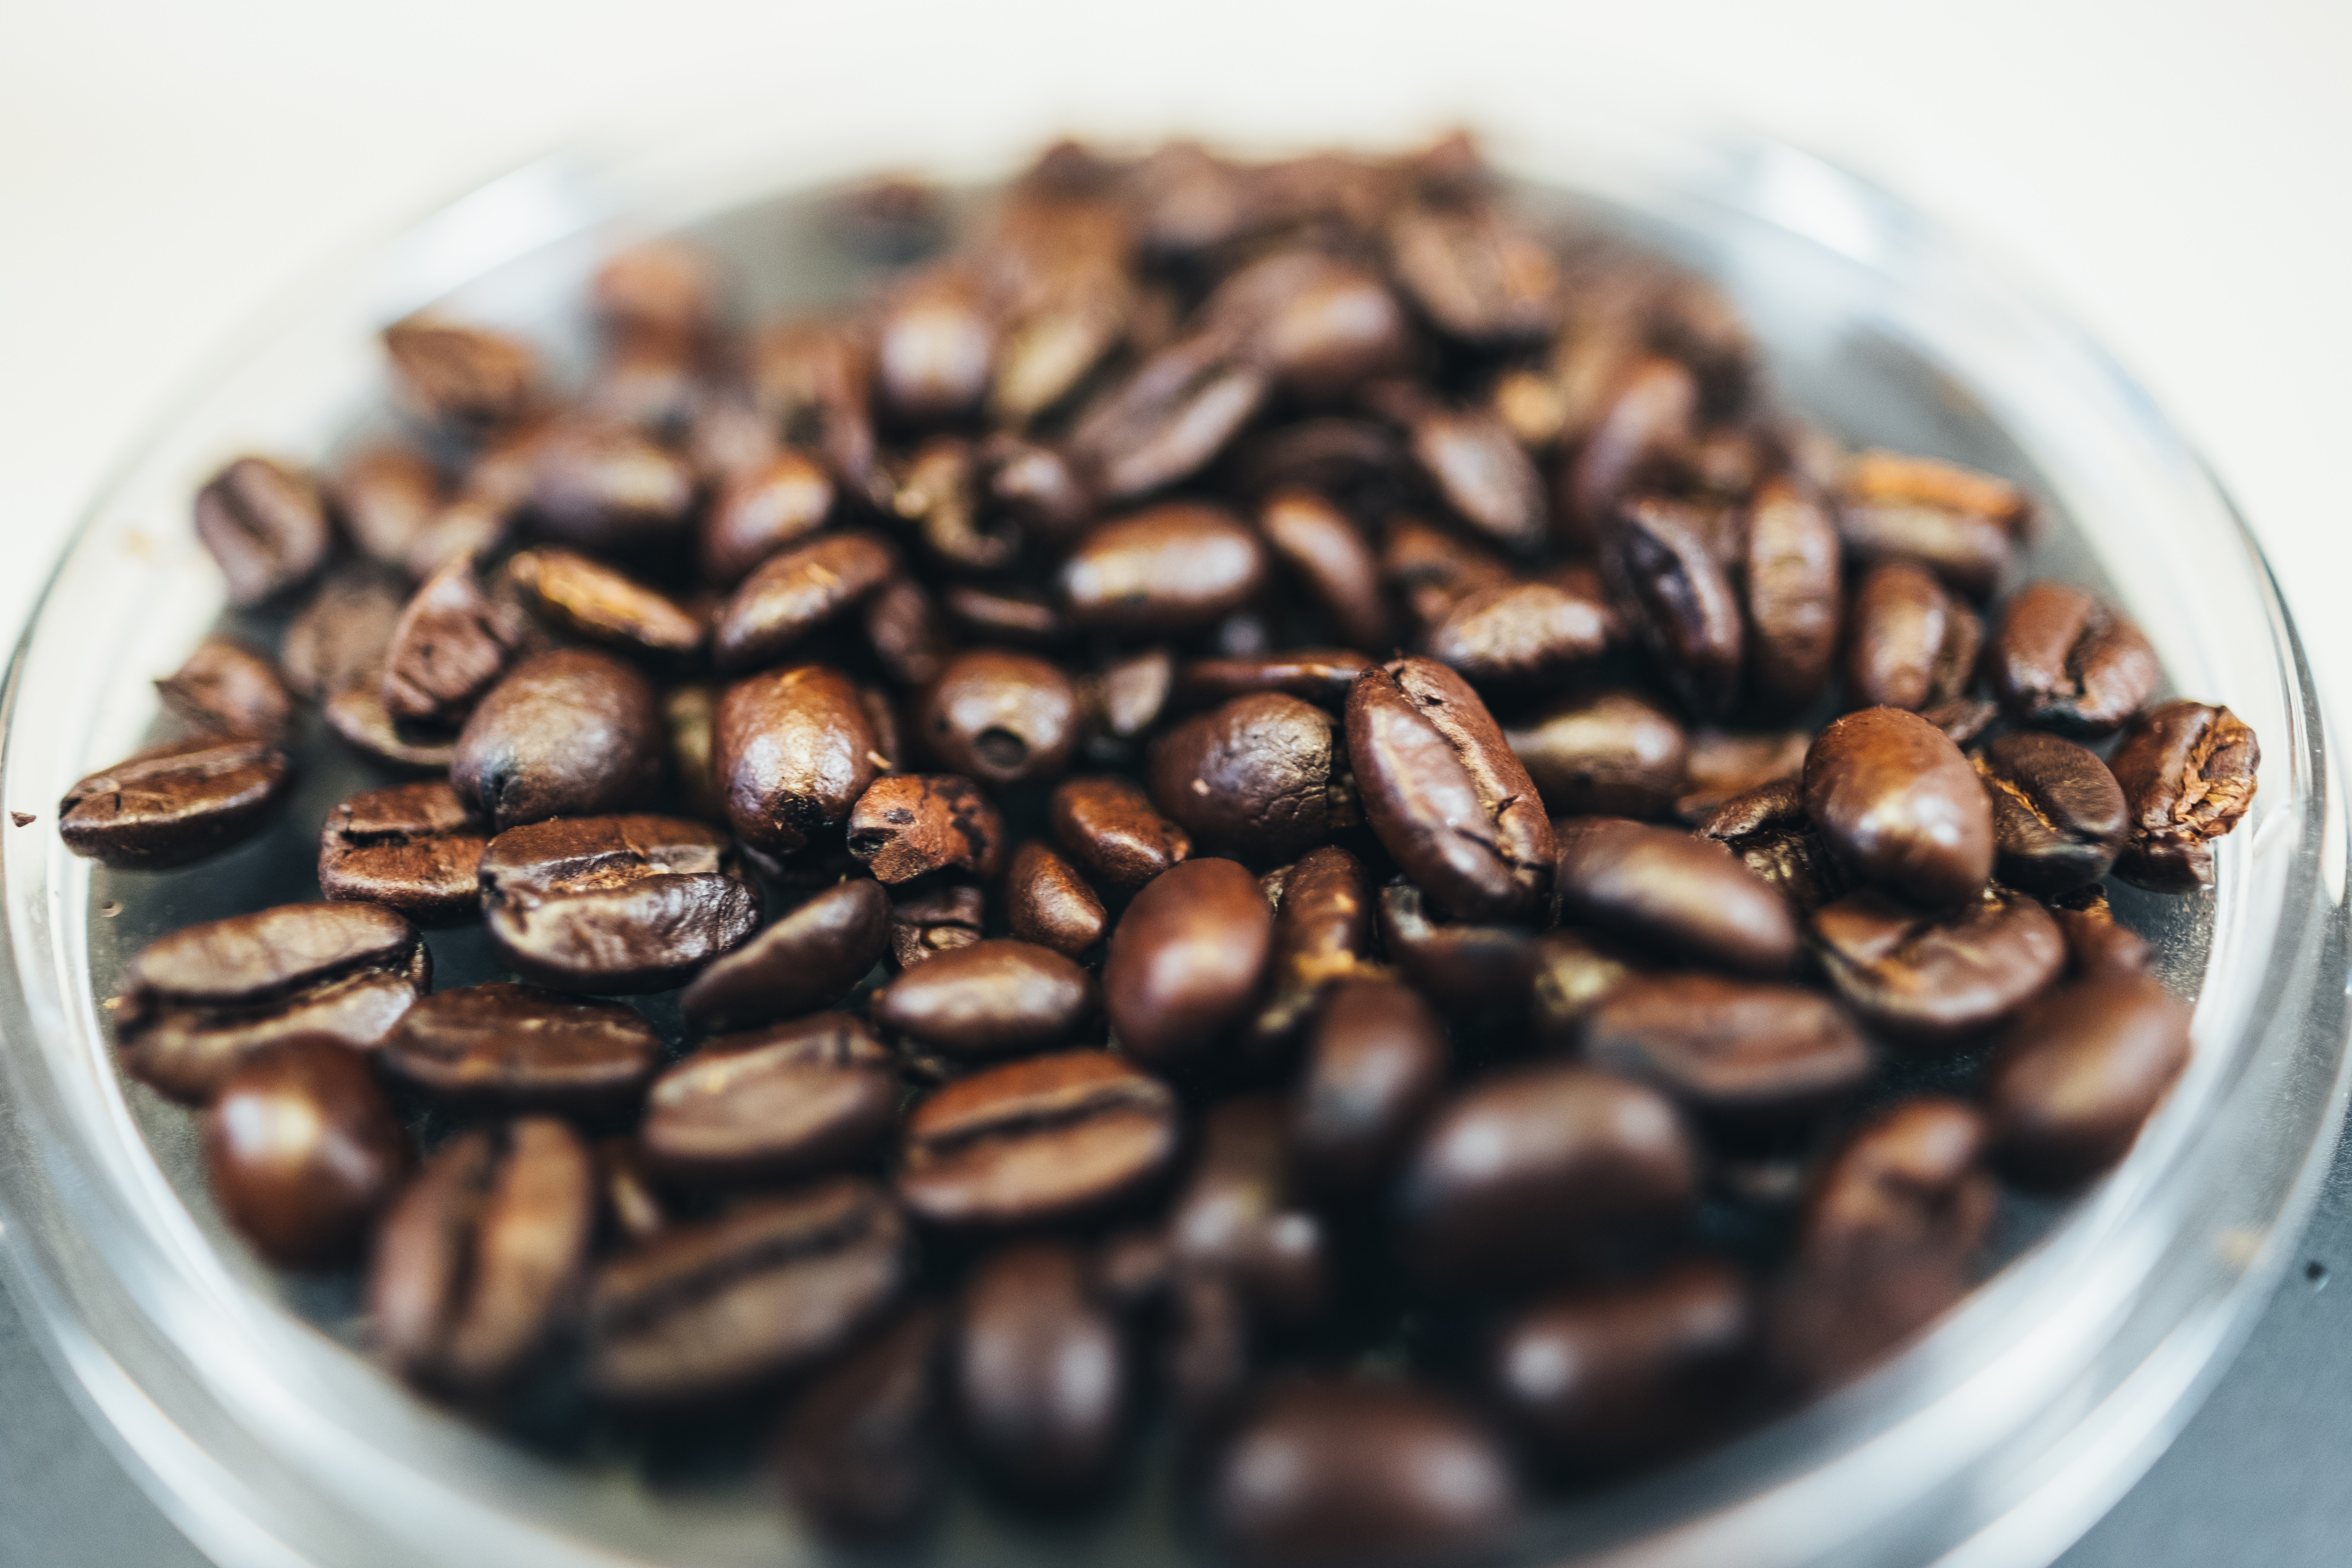 coffee-beans-andrew-seaman-547770-unsplash